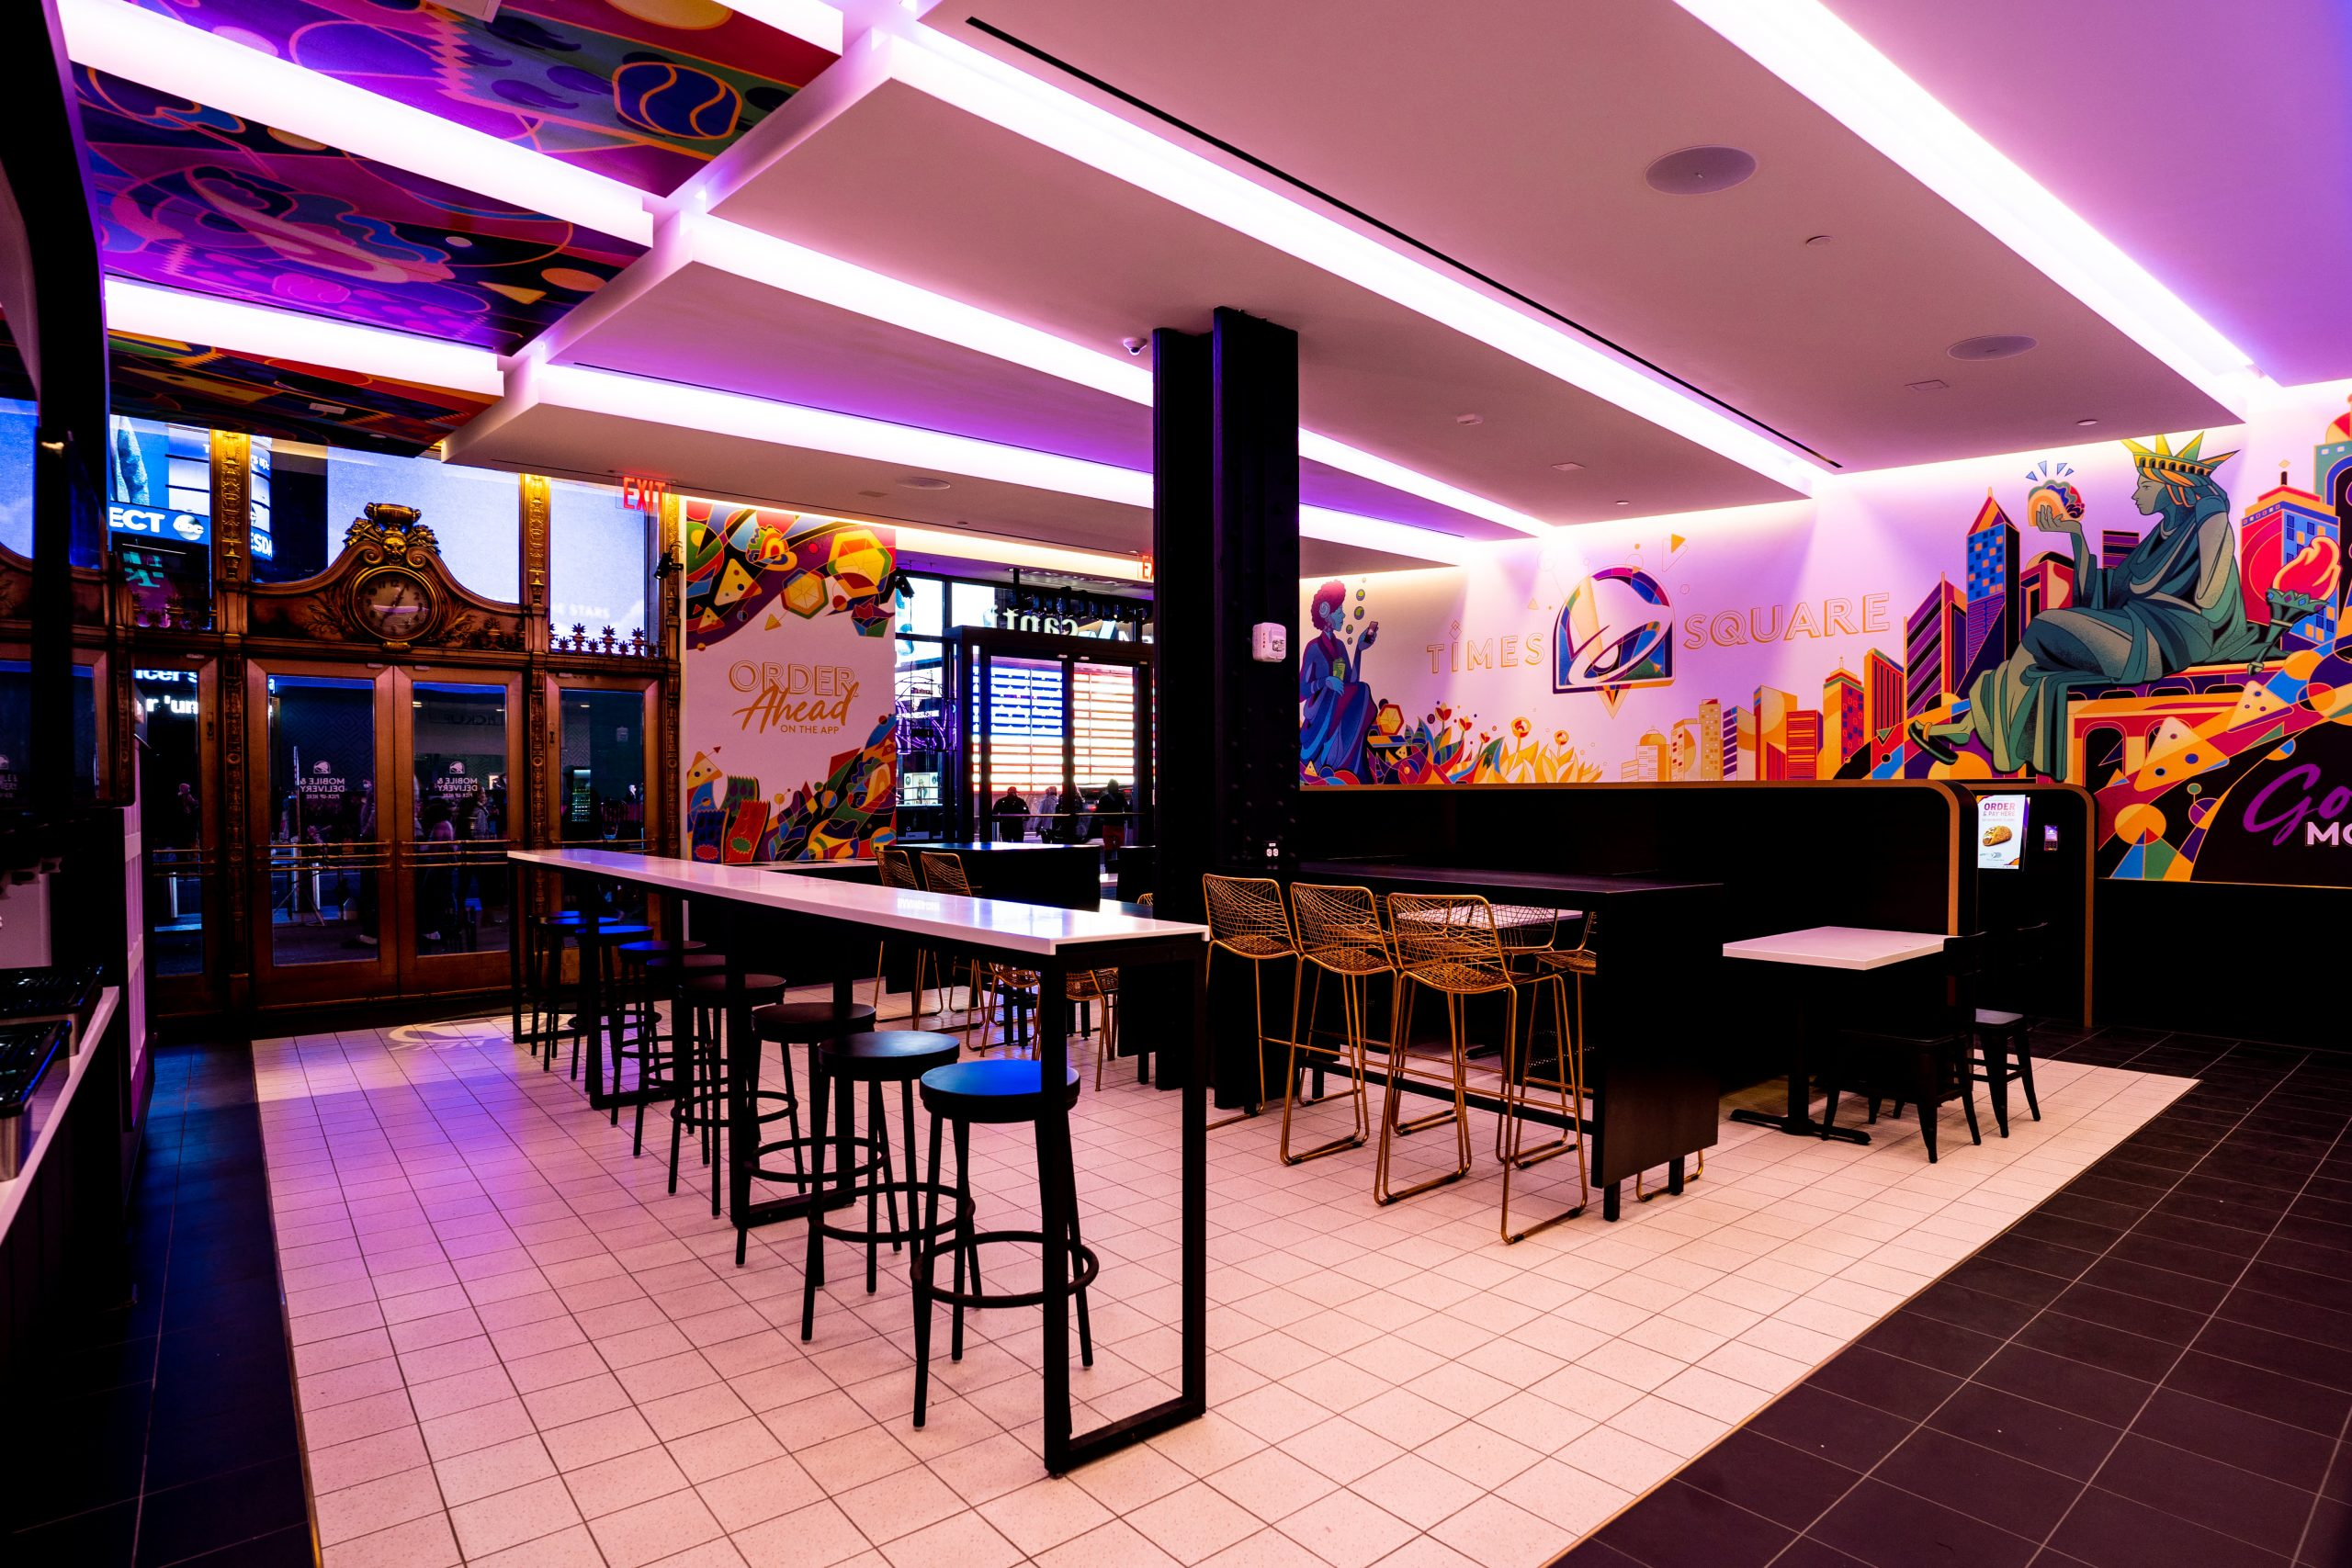 Taco Bell to open first digital-only U.S. location in Times Square